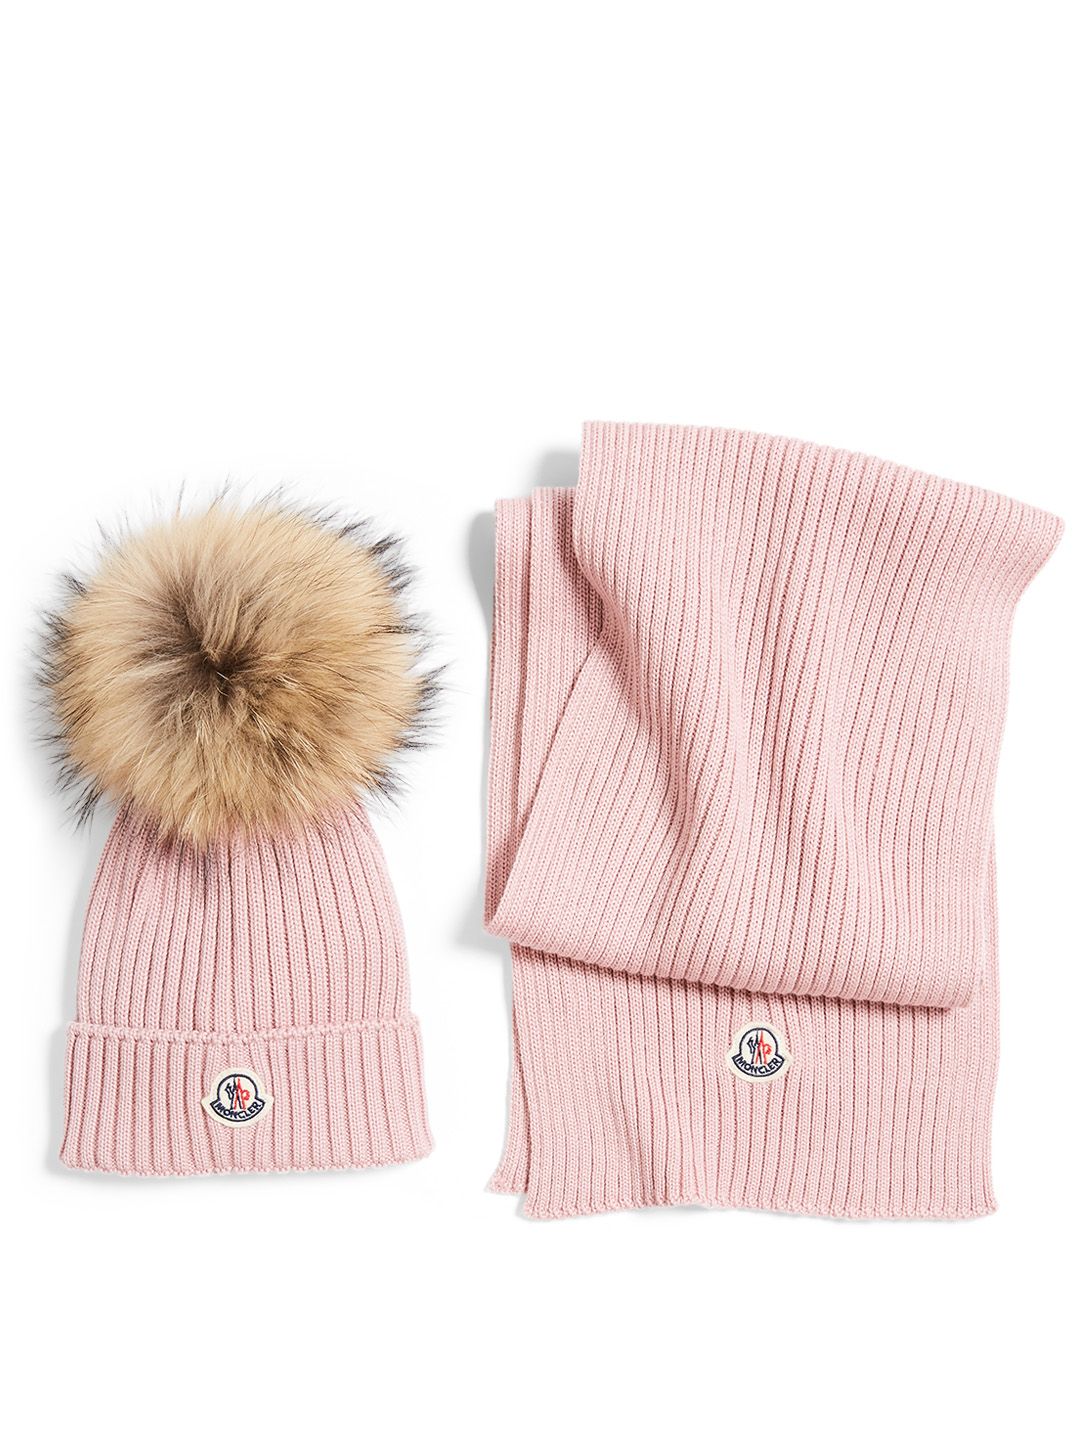 MONCLER ENFANT Kids' Wool Toque And Scarf Box Set Kids Pink